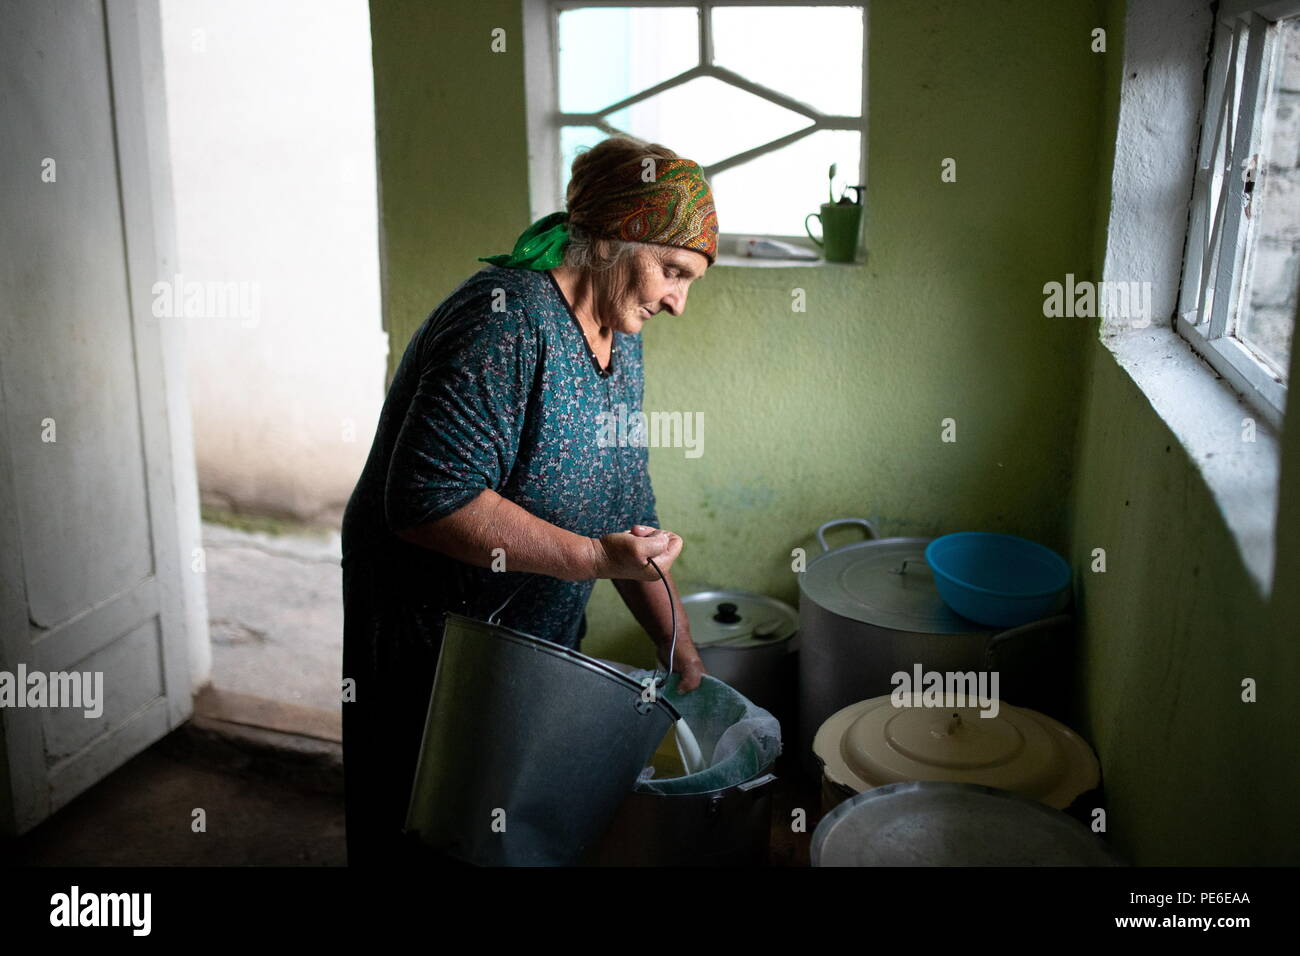 South Ossetia. 12th Aug, 2018. SOUTH OSSETIA - AUGUST 11, 2018: Margarita Madzigova, 63, makes home cheese in the village of Khetagurovo, Tskhinvali District, South Ossetia; Margarita and her husband Alikhan have been running a farm since their house was restored after the 2008 South Ossetian-Georgian military conflict. Sergei Bobylev/TASS Credit: ITAR-TASS News Agency/Alamy Live News - Stock Image